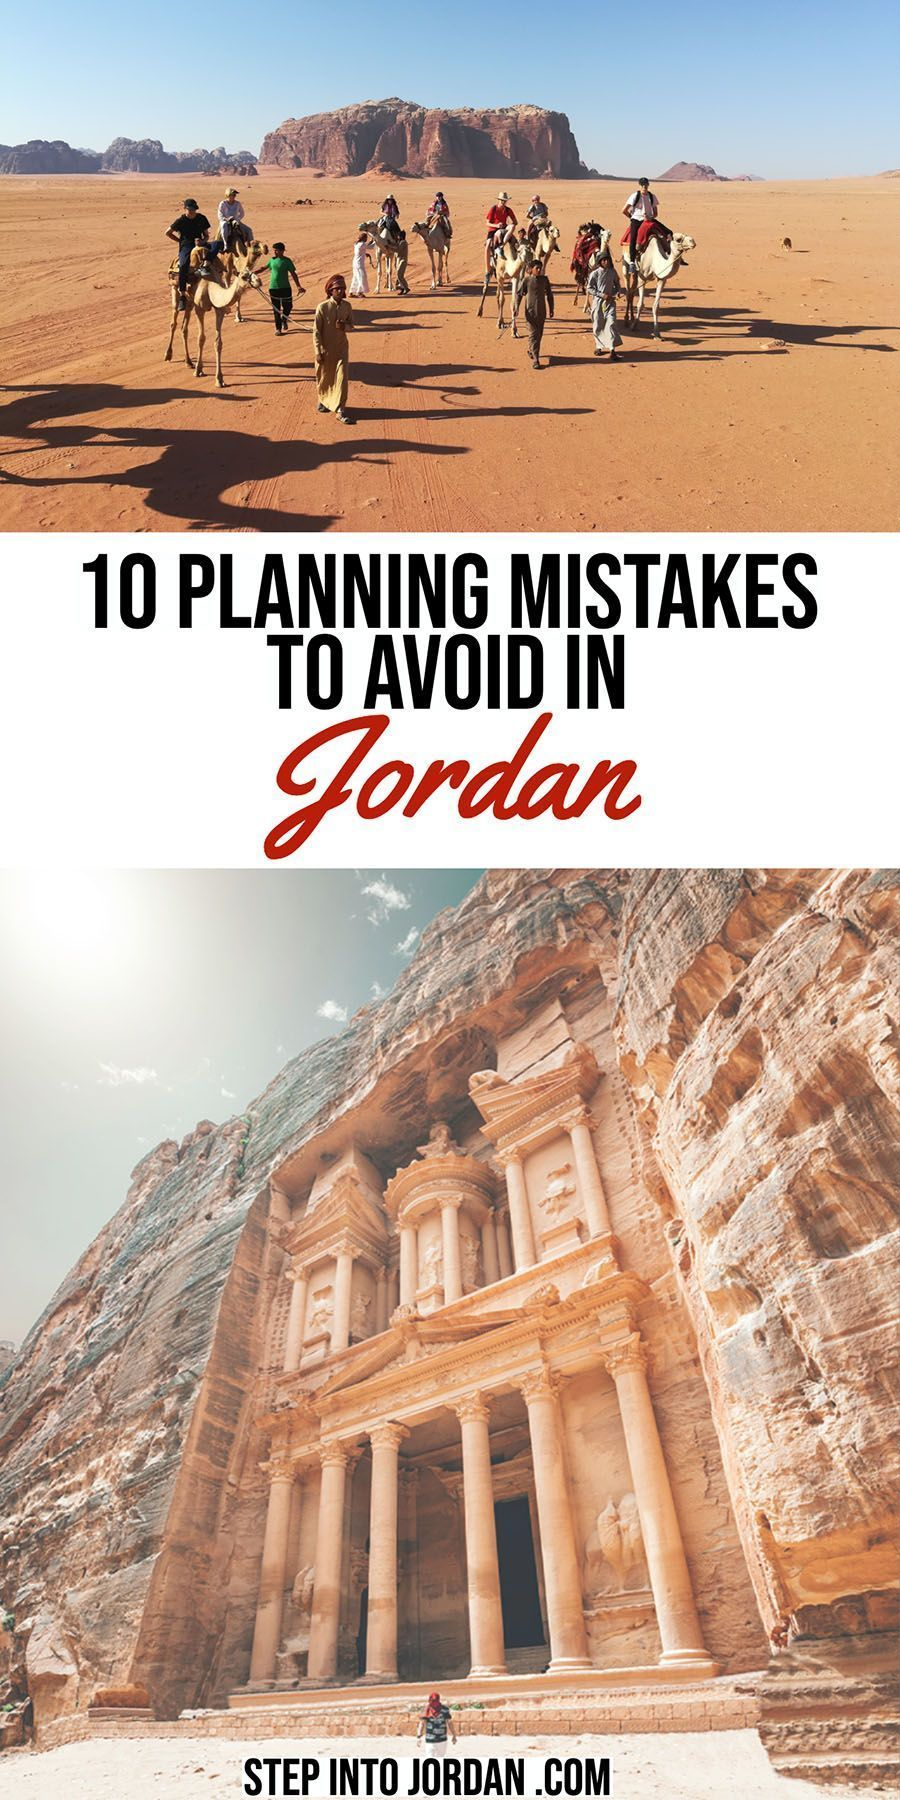 Mistakes to Avoid when planning a Trip to Jordan | Jordan Travel Tips | Middle East Travel Tips | Petra Travel Tips | Petra Jordan Travel #jordan #petra #unesco #travel #traveltips #traveltojordan Mistakes to Avoid when planning a Trip to Jordan | Jordan Travel Tips | Middle East Travel Tips | Petra Travel Tips | Petra Jordan Travel #jordan #petra #unesco #travel #traveltips #traveltojordan Mistakes to Avoid when planning a Trip to Jordan | Jordan Travel Tips | Middle East Travel Tips | Petra Tr #petrajordan